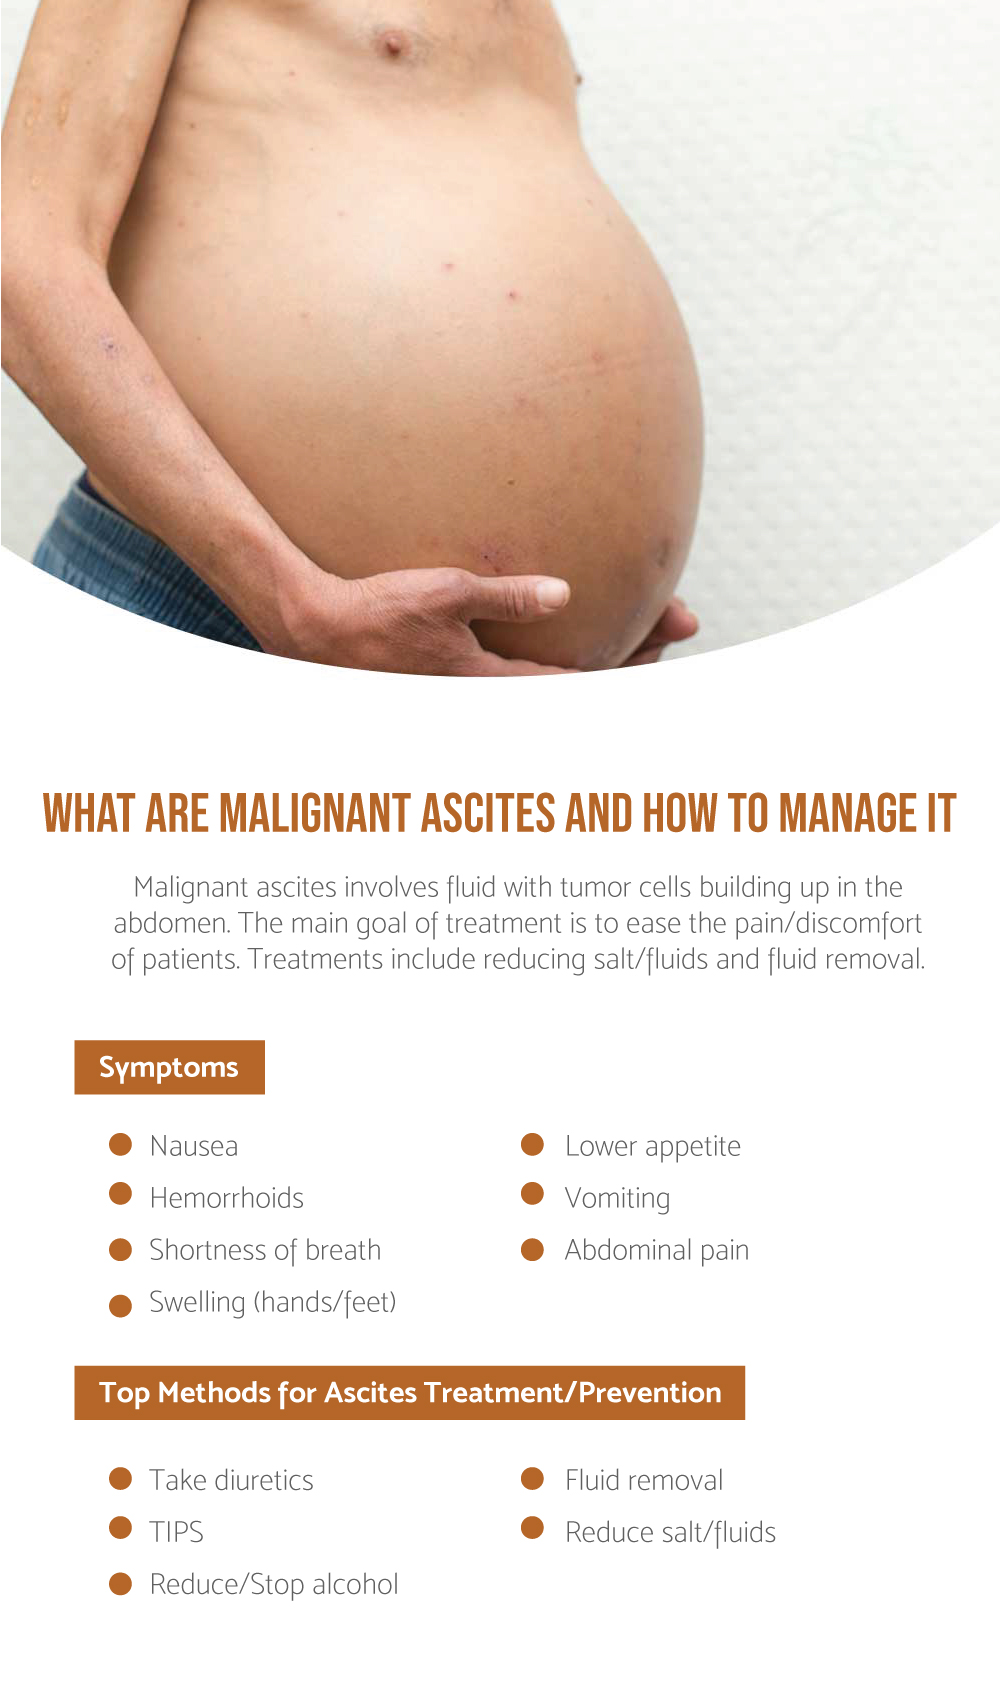 How To Manage Malignant Ascites